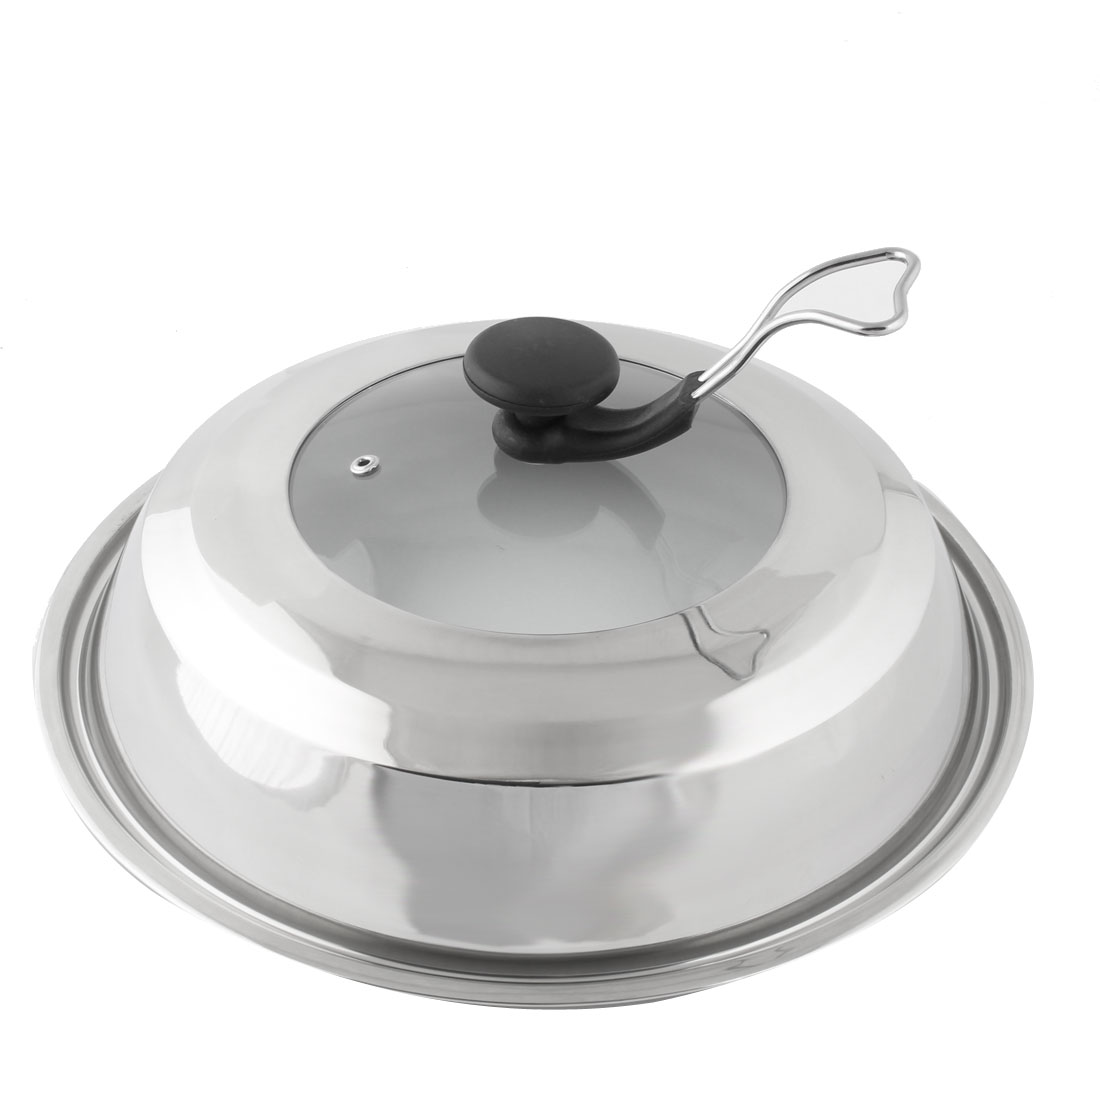 Restaurant Stainless Steel Cookware Cooker Pot Skillet Frying Pan Lid Cover 33cm Dia